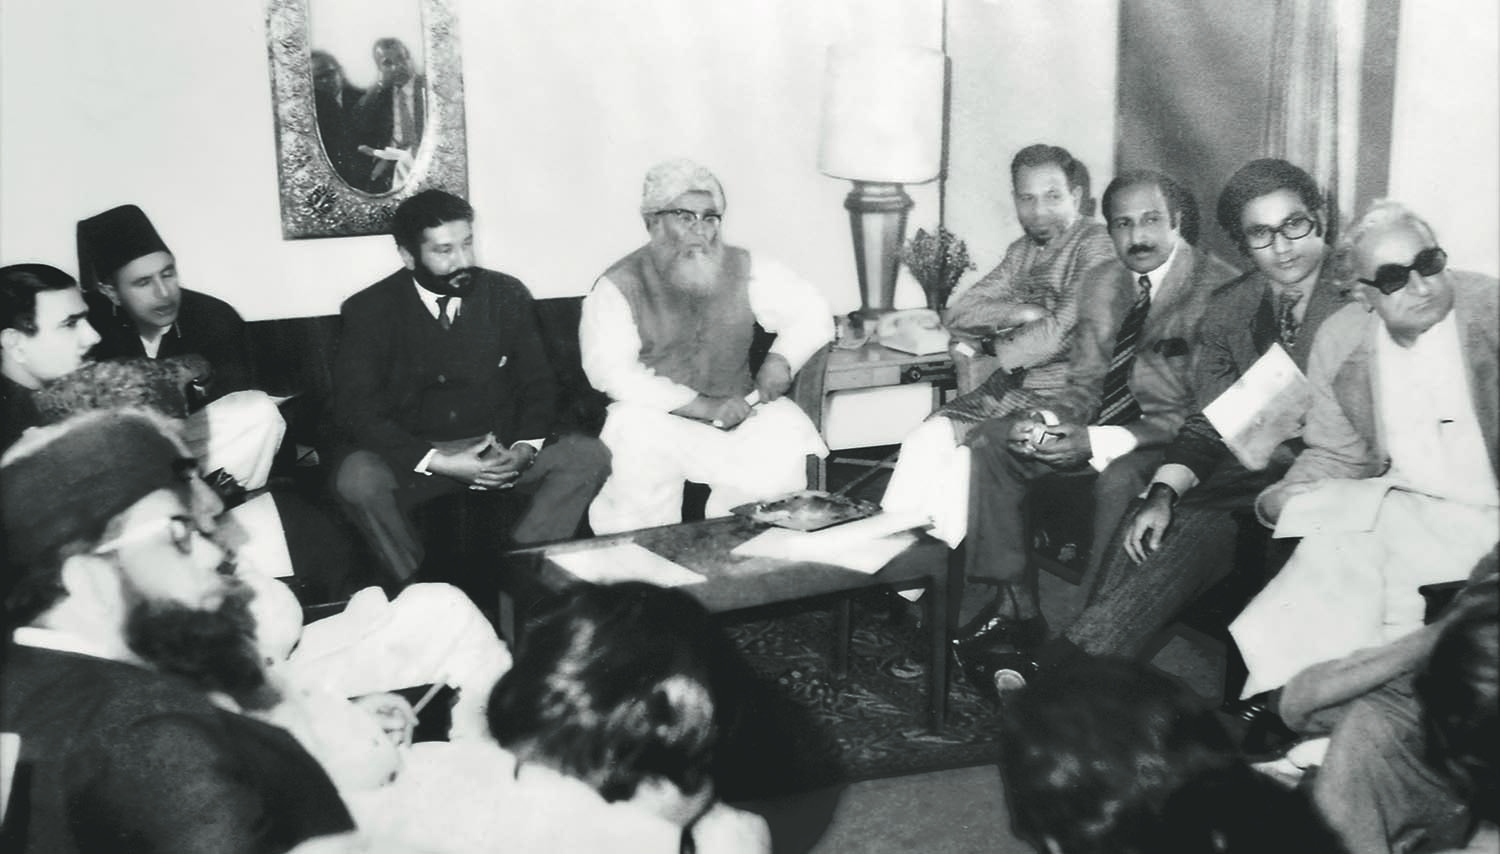 A meeting of the main opposition United Democratic Front at the Intercontinental Hotel in Rawalpindi ahead of the passage of the Constitution in 1973. Seen from left to right are: Maulana Shah Ahmed Noorani, Sardar Sherbaz Mazari, Nawabzada Nasrullah Khan, Syed Shah Mardan Shah Pir Pagaro, Maulana Mufti Mehmood, Professor Ghafoor Ahmed, Chaudhry Zahoor Elahi, Ahmed Raza Kasuri and Khan Abdul Wali Khan. | Photo: Sherbaz Mazari Archives